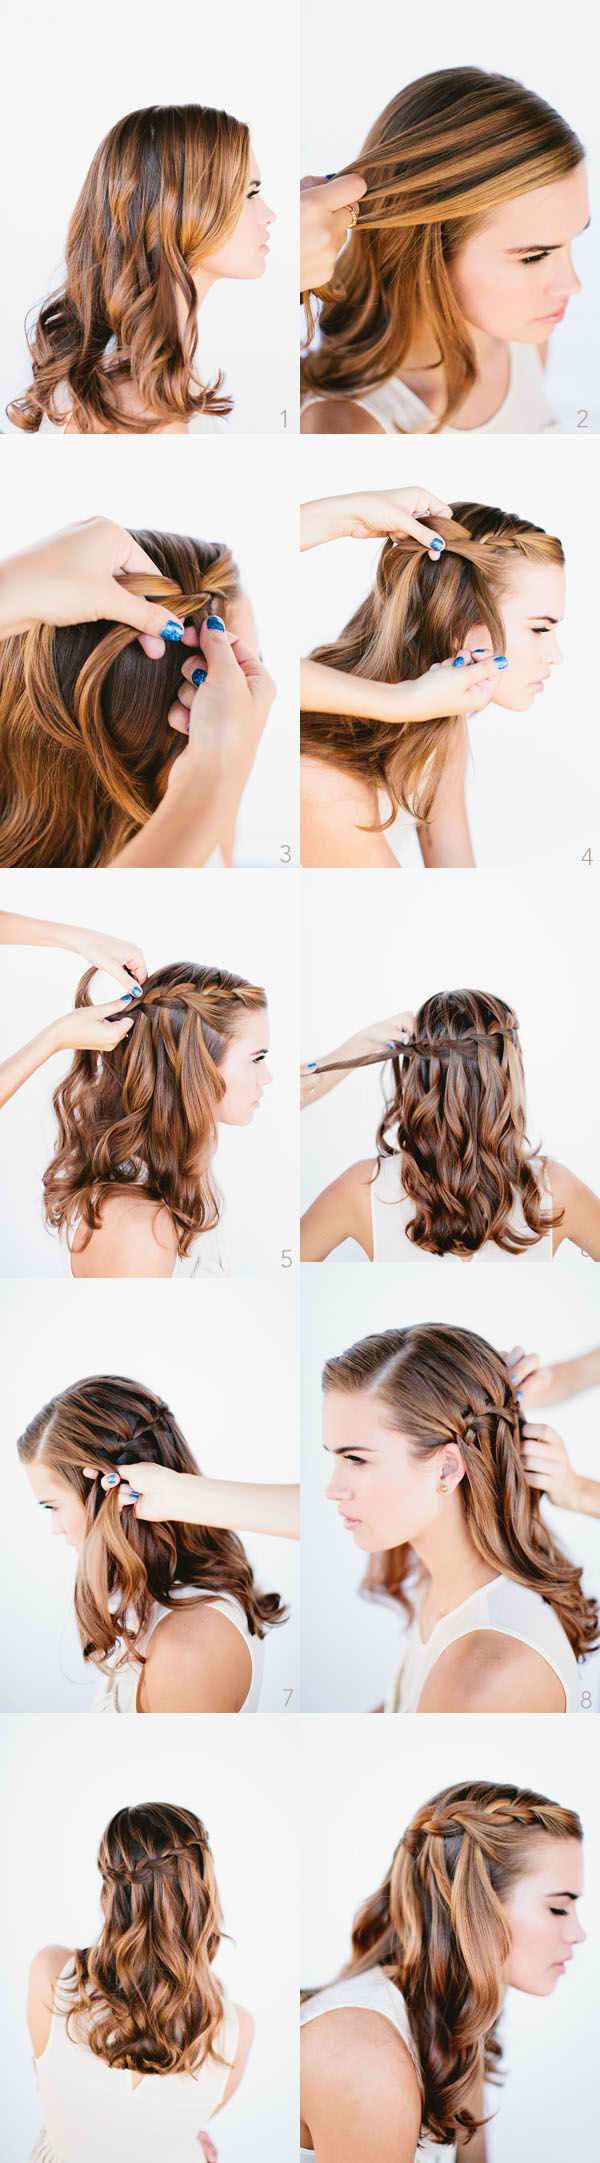 Easy Hairstyles To Do With Straightened Hair